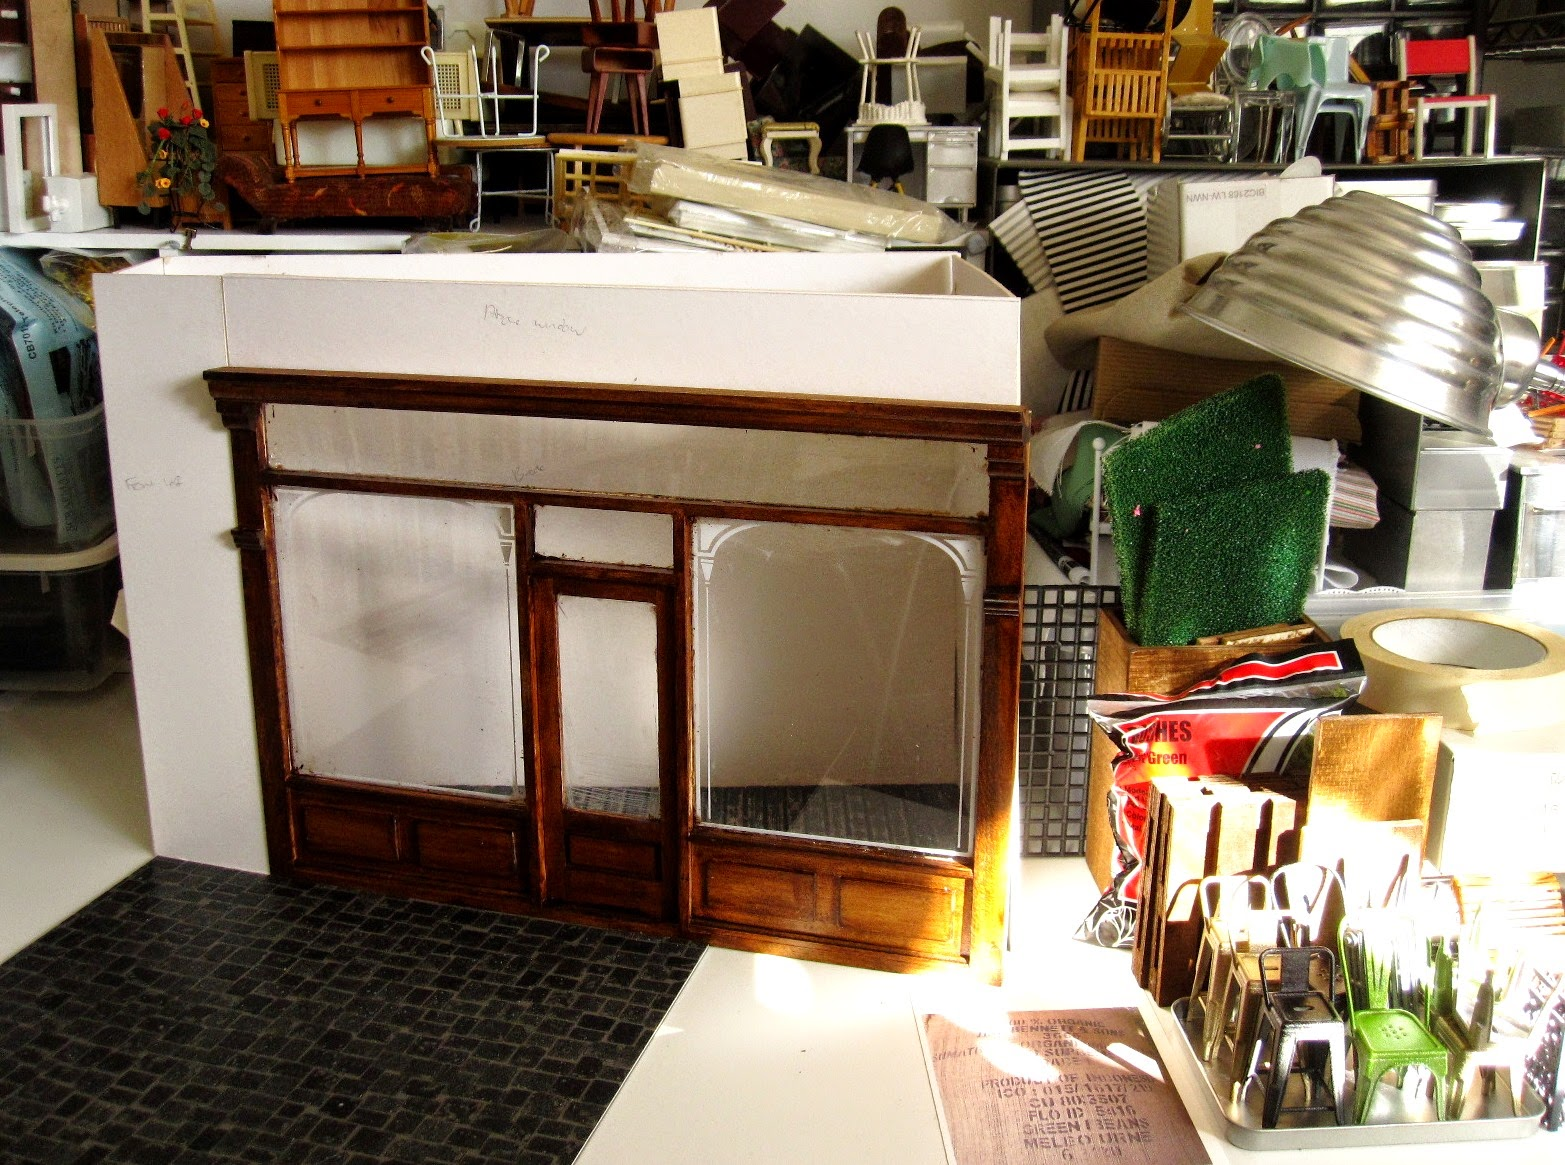 Modern dolls' house miniature half-built cafe on a work table.